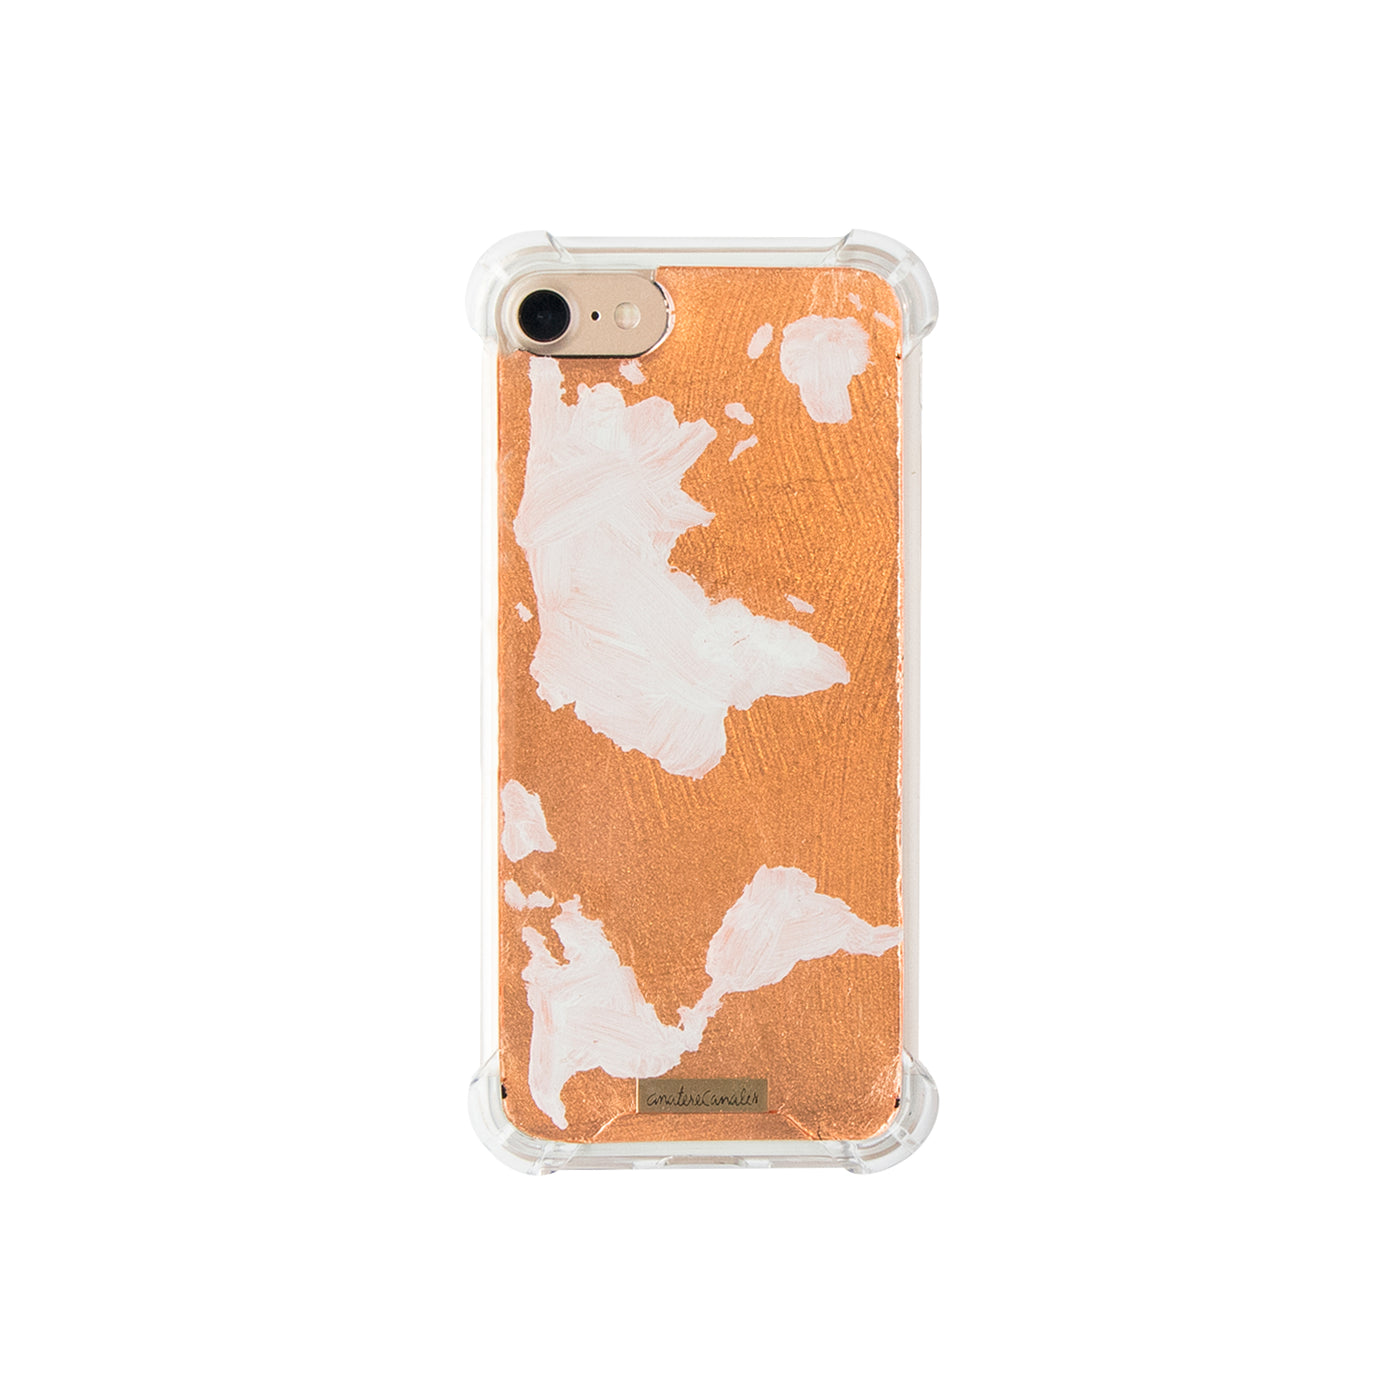 Wanderlust Rose White Case/Funda para iPhone/Samsung - Ana Tere Canales